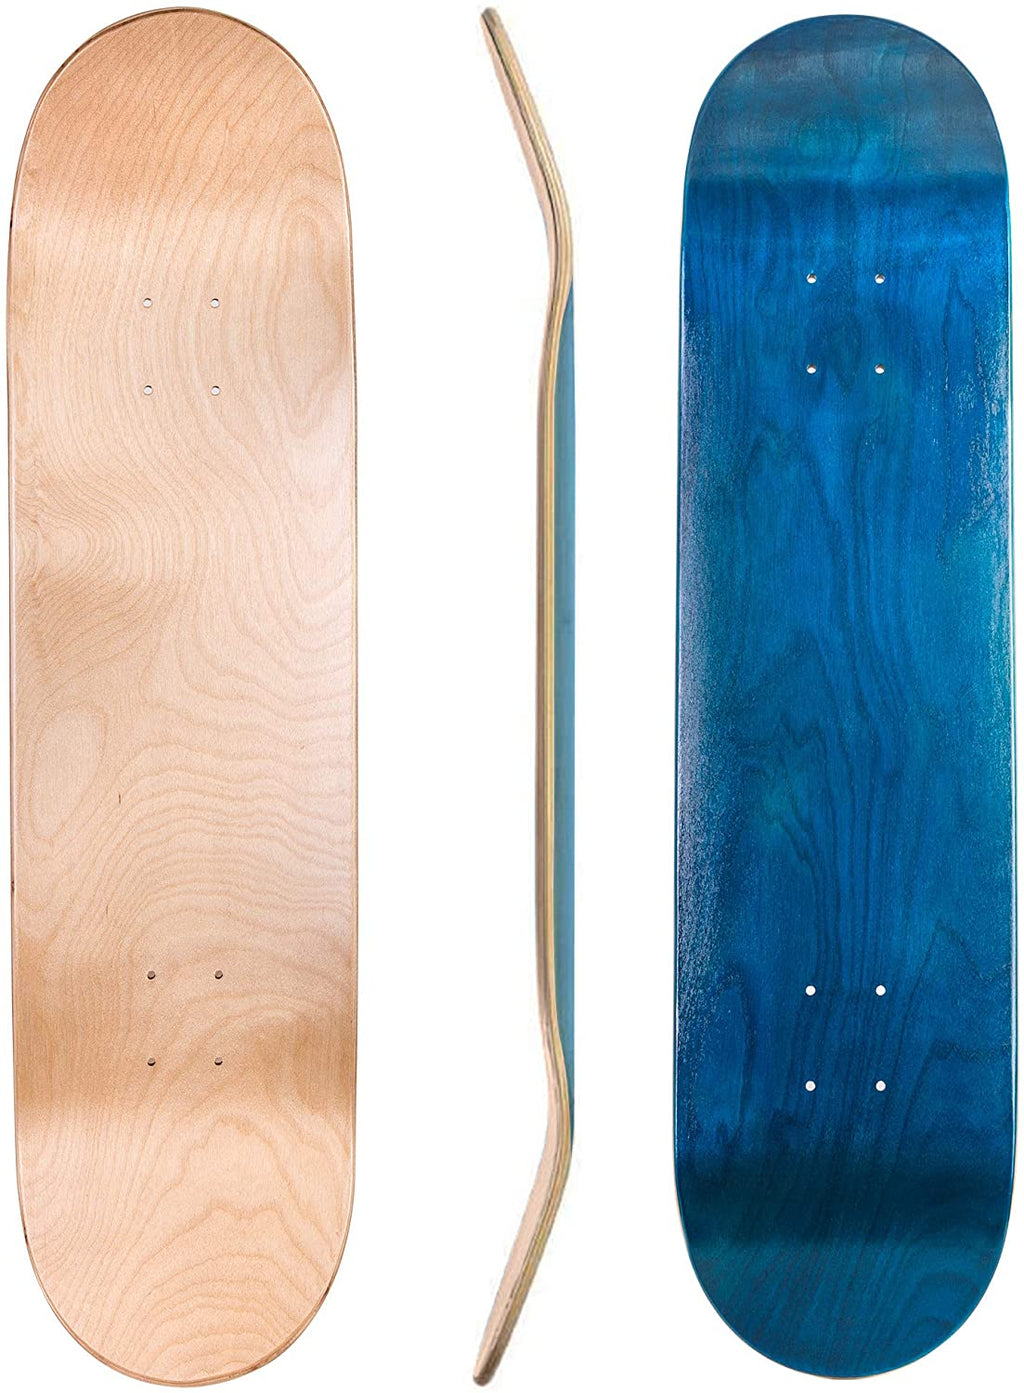 "Blank Maple Skateboard Deck | 7.75"", 8.0"", 8.25"", 8.50"""